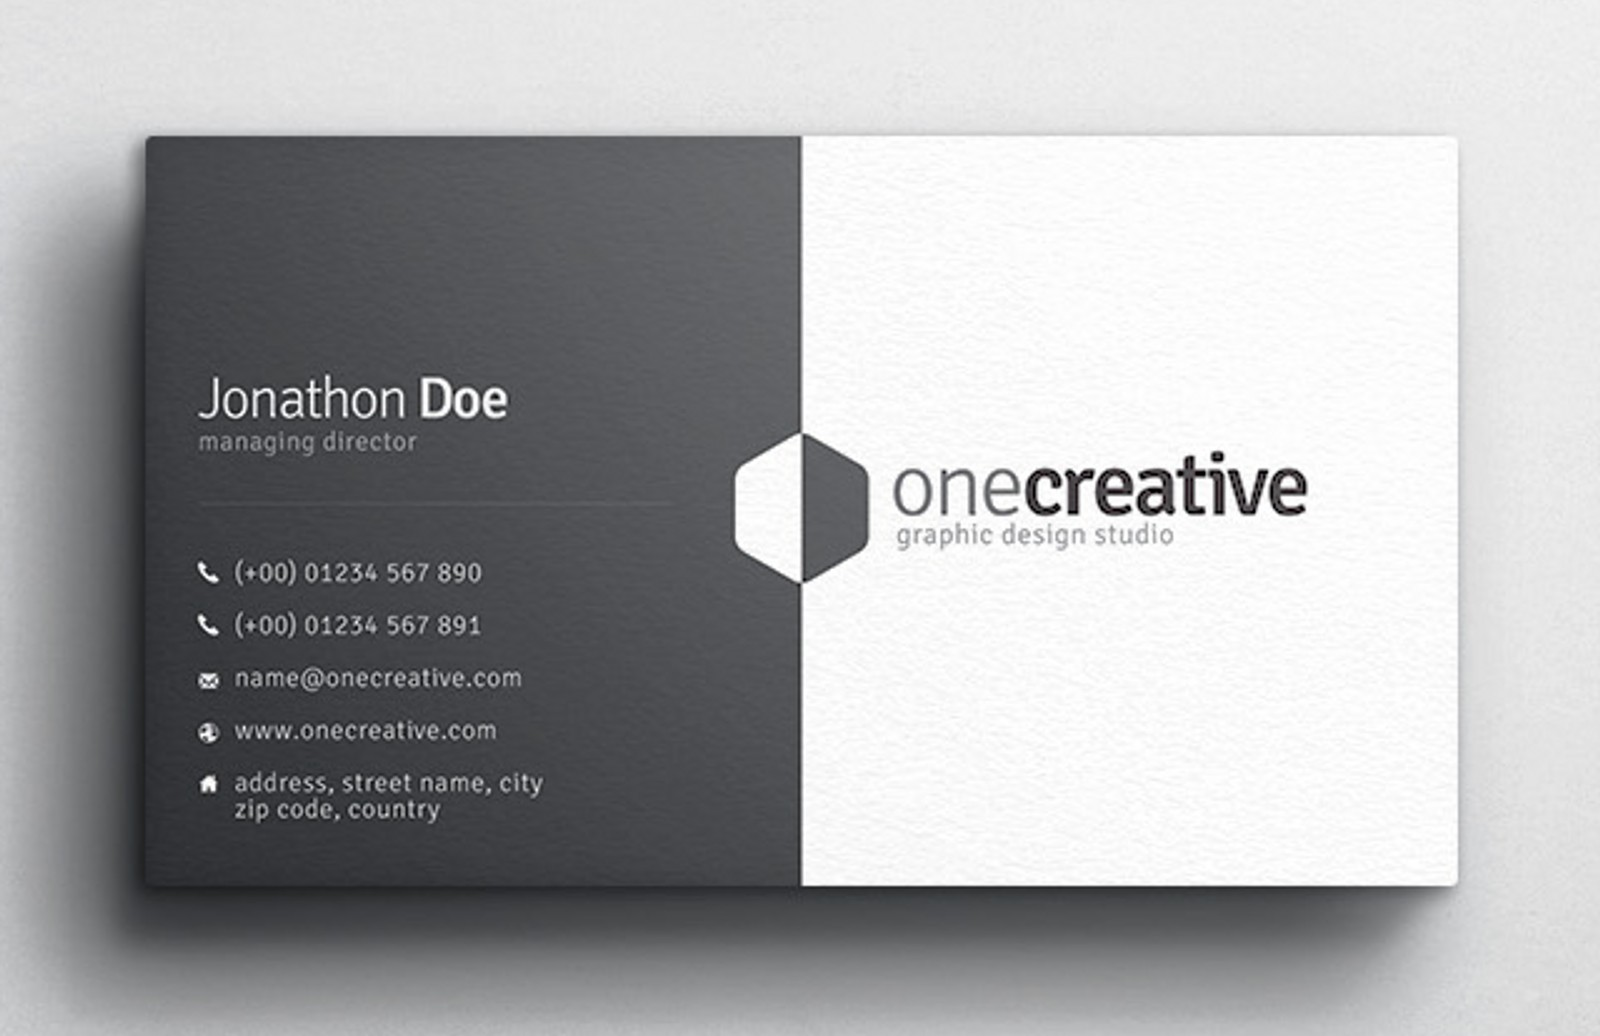 Duo business card design medialoot duo business card design template preview1 reheart Gallery